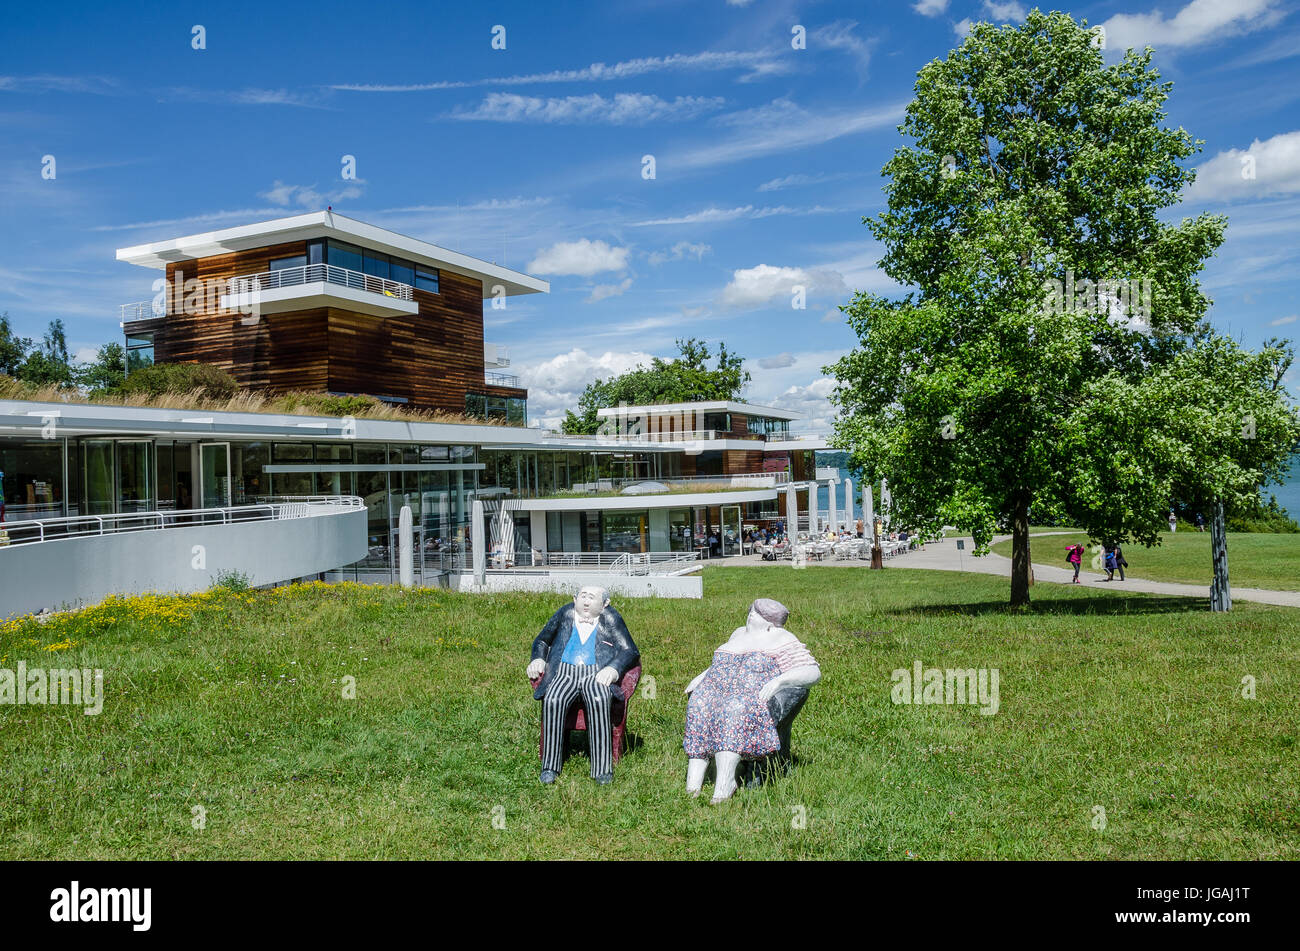 Buchheim Museum of Phantasy located north of Bernried in Höhenried Park on the banks of Lake Starnberg - A - Stock Image